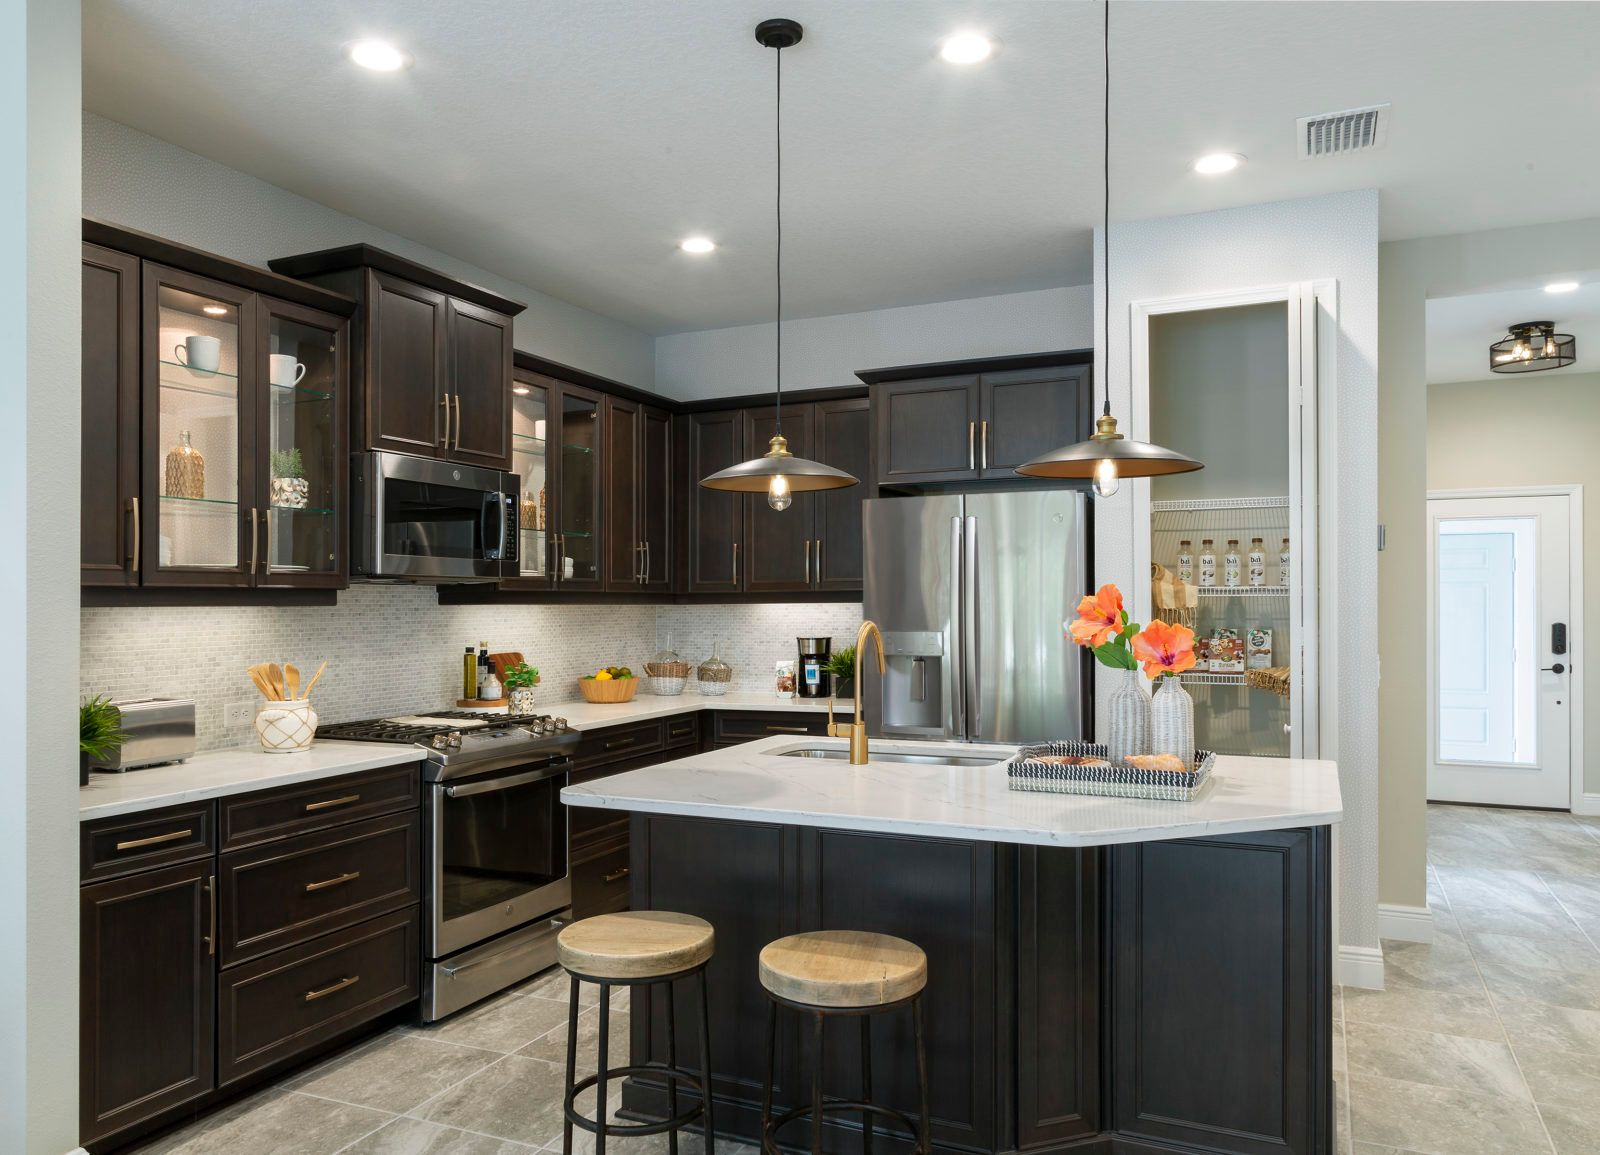 Kitchen featured in the Tidewater By Neal Communities in Sarasota-Bradenton, FL